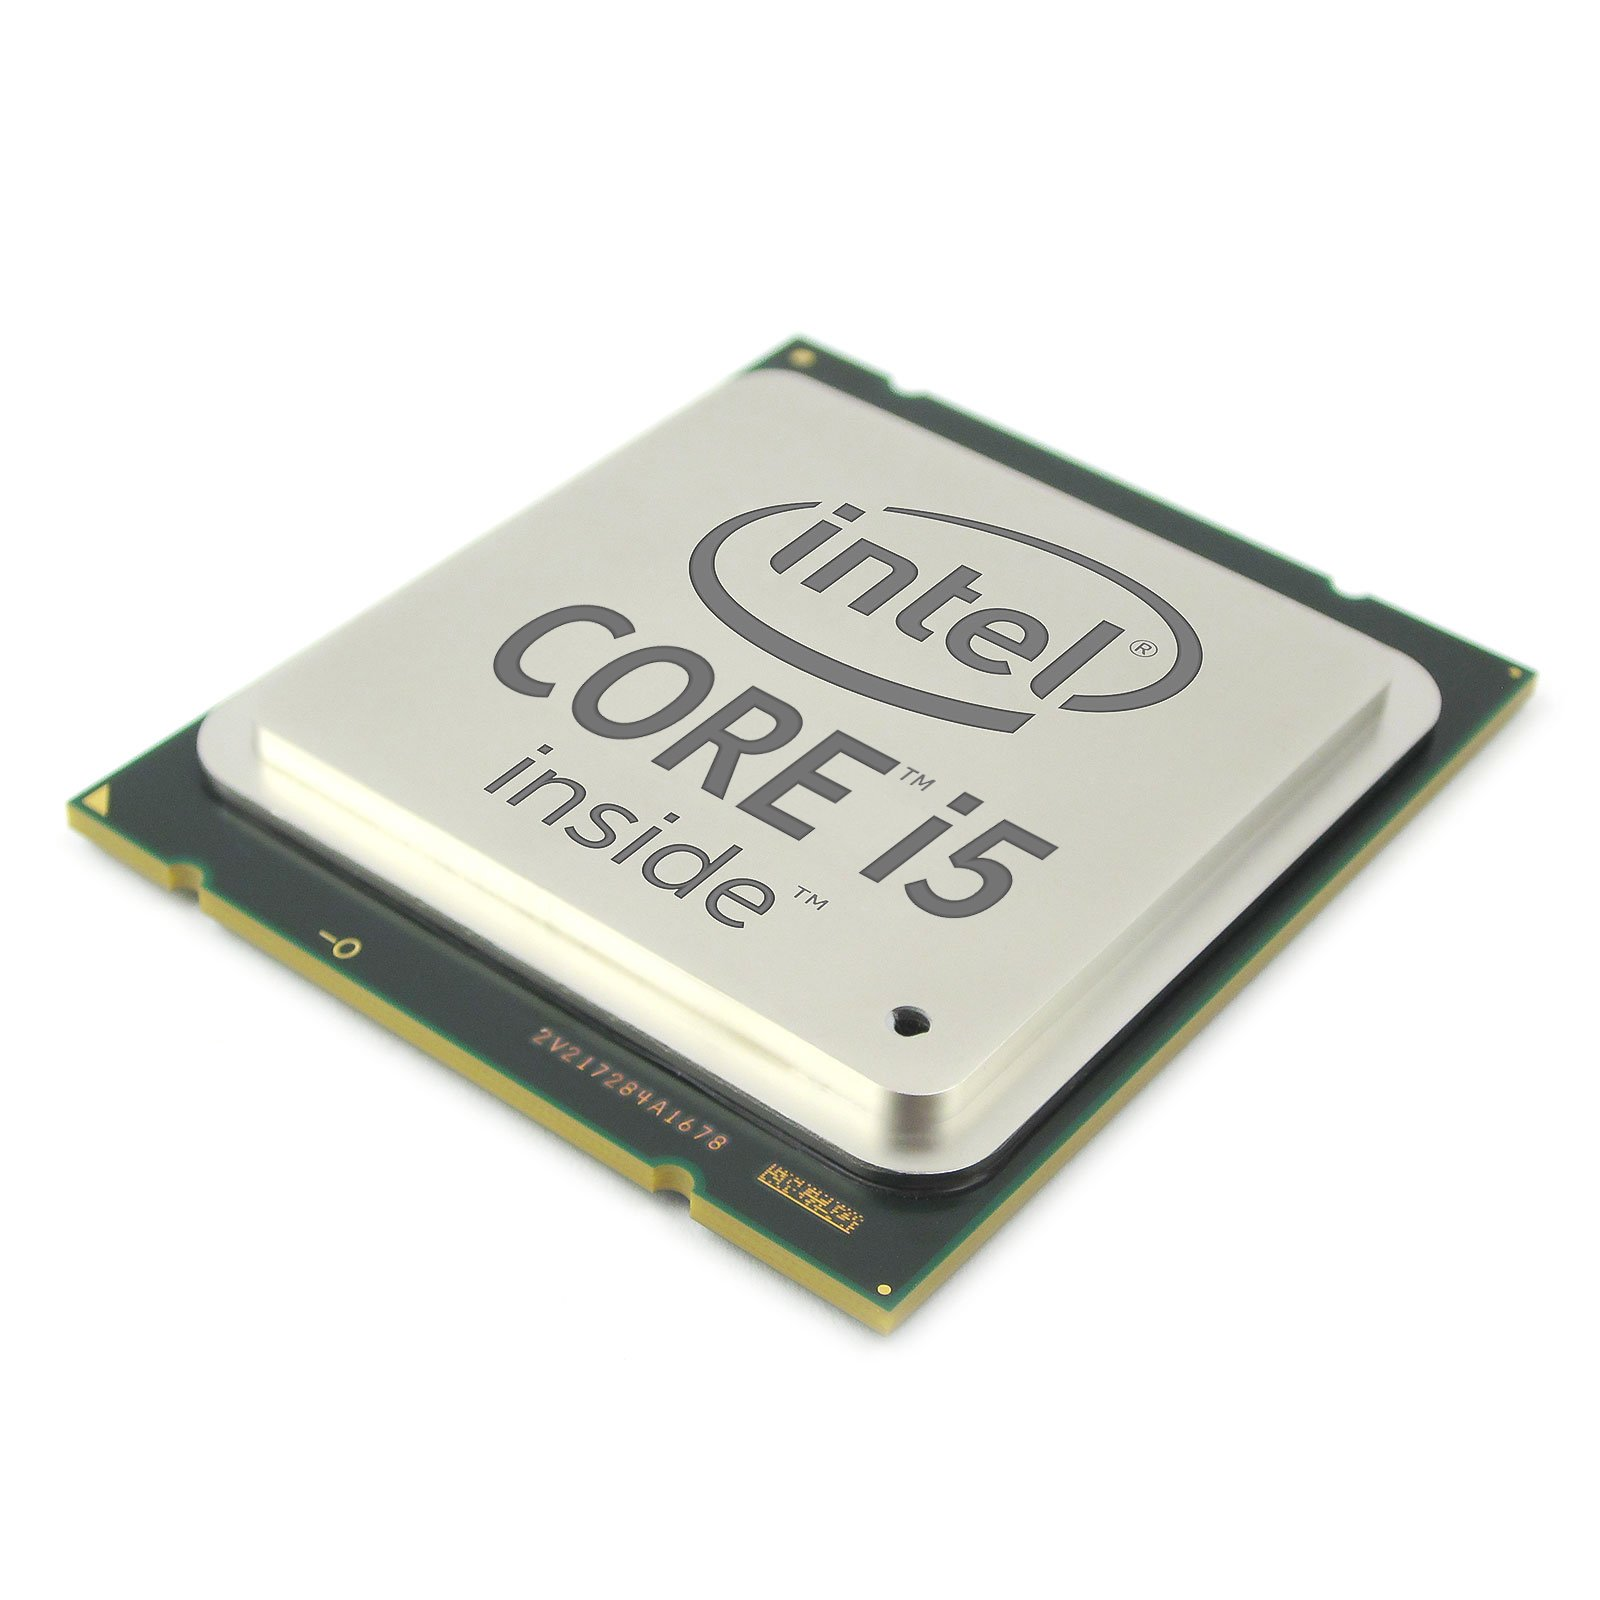 Intel Core i5-650 Processor (3.20Ghz) (Certified Refurbished)